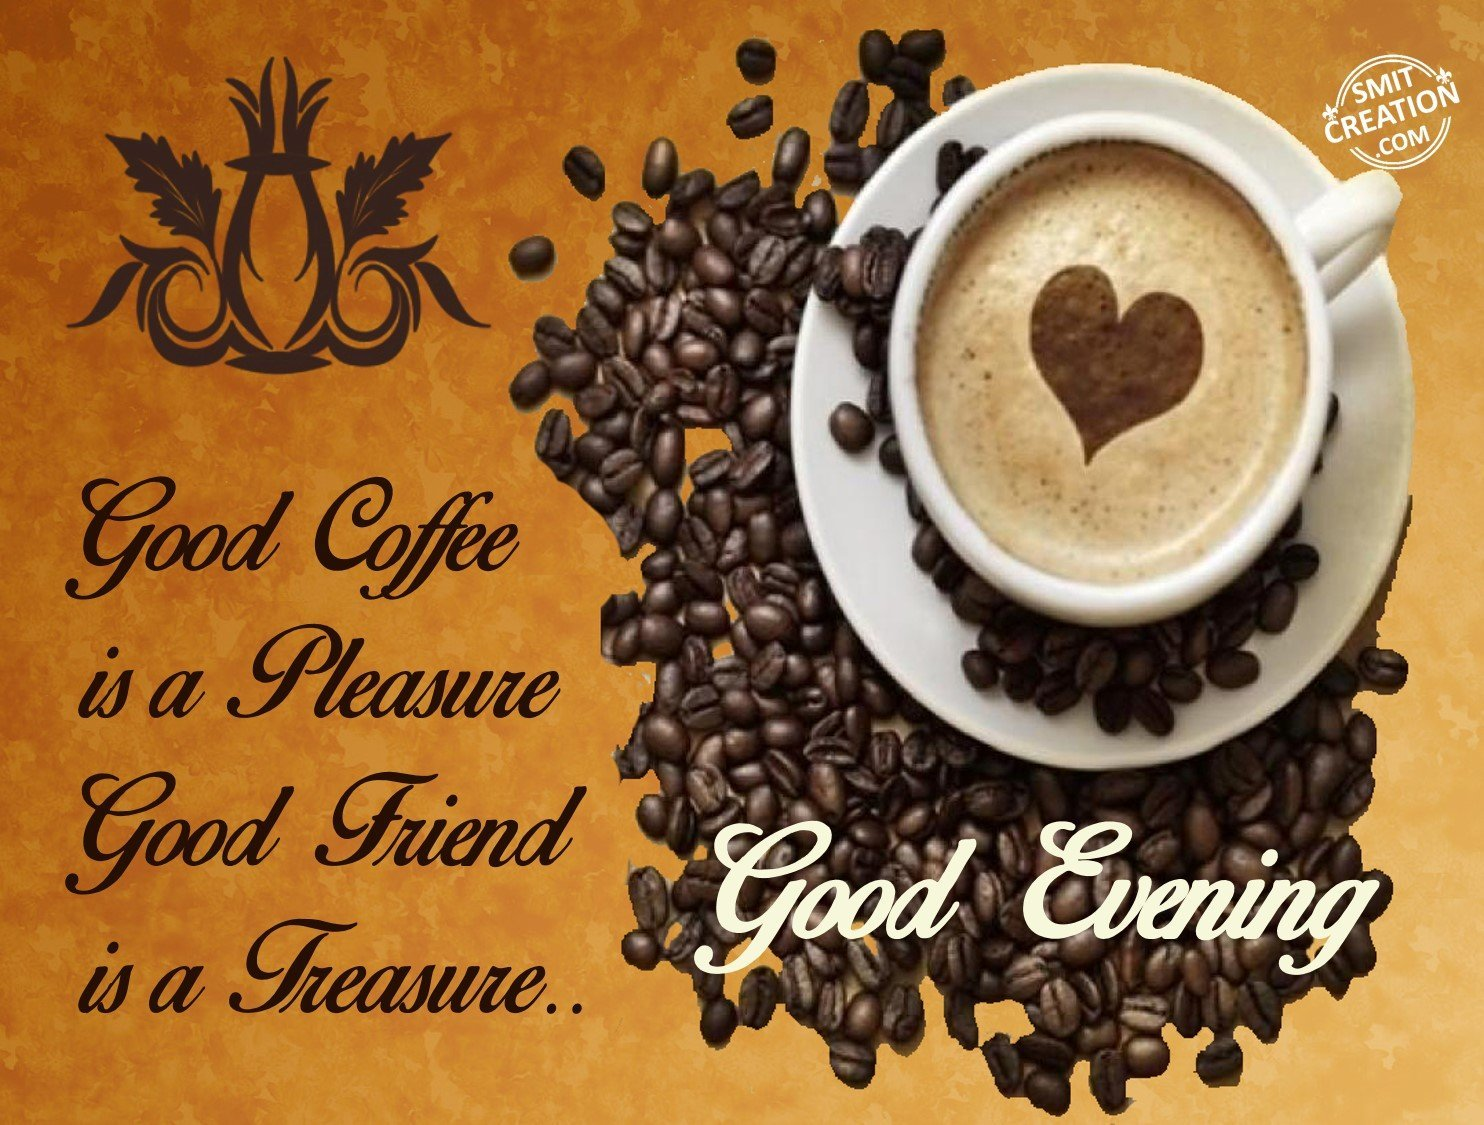 Good Evening Coffee Pictures And Graphics Smitcreationcom